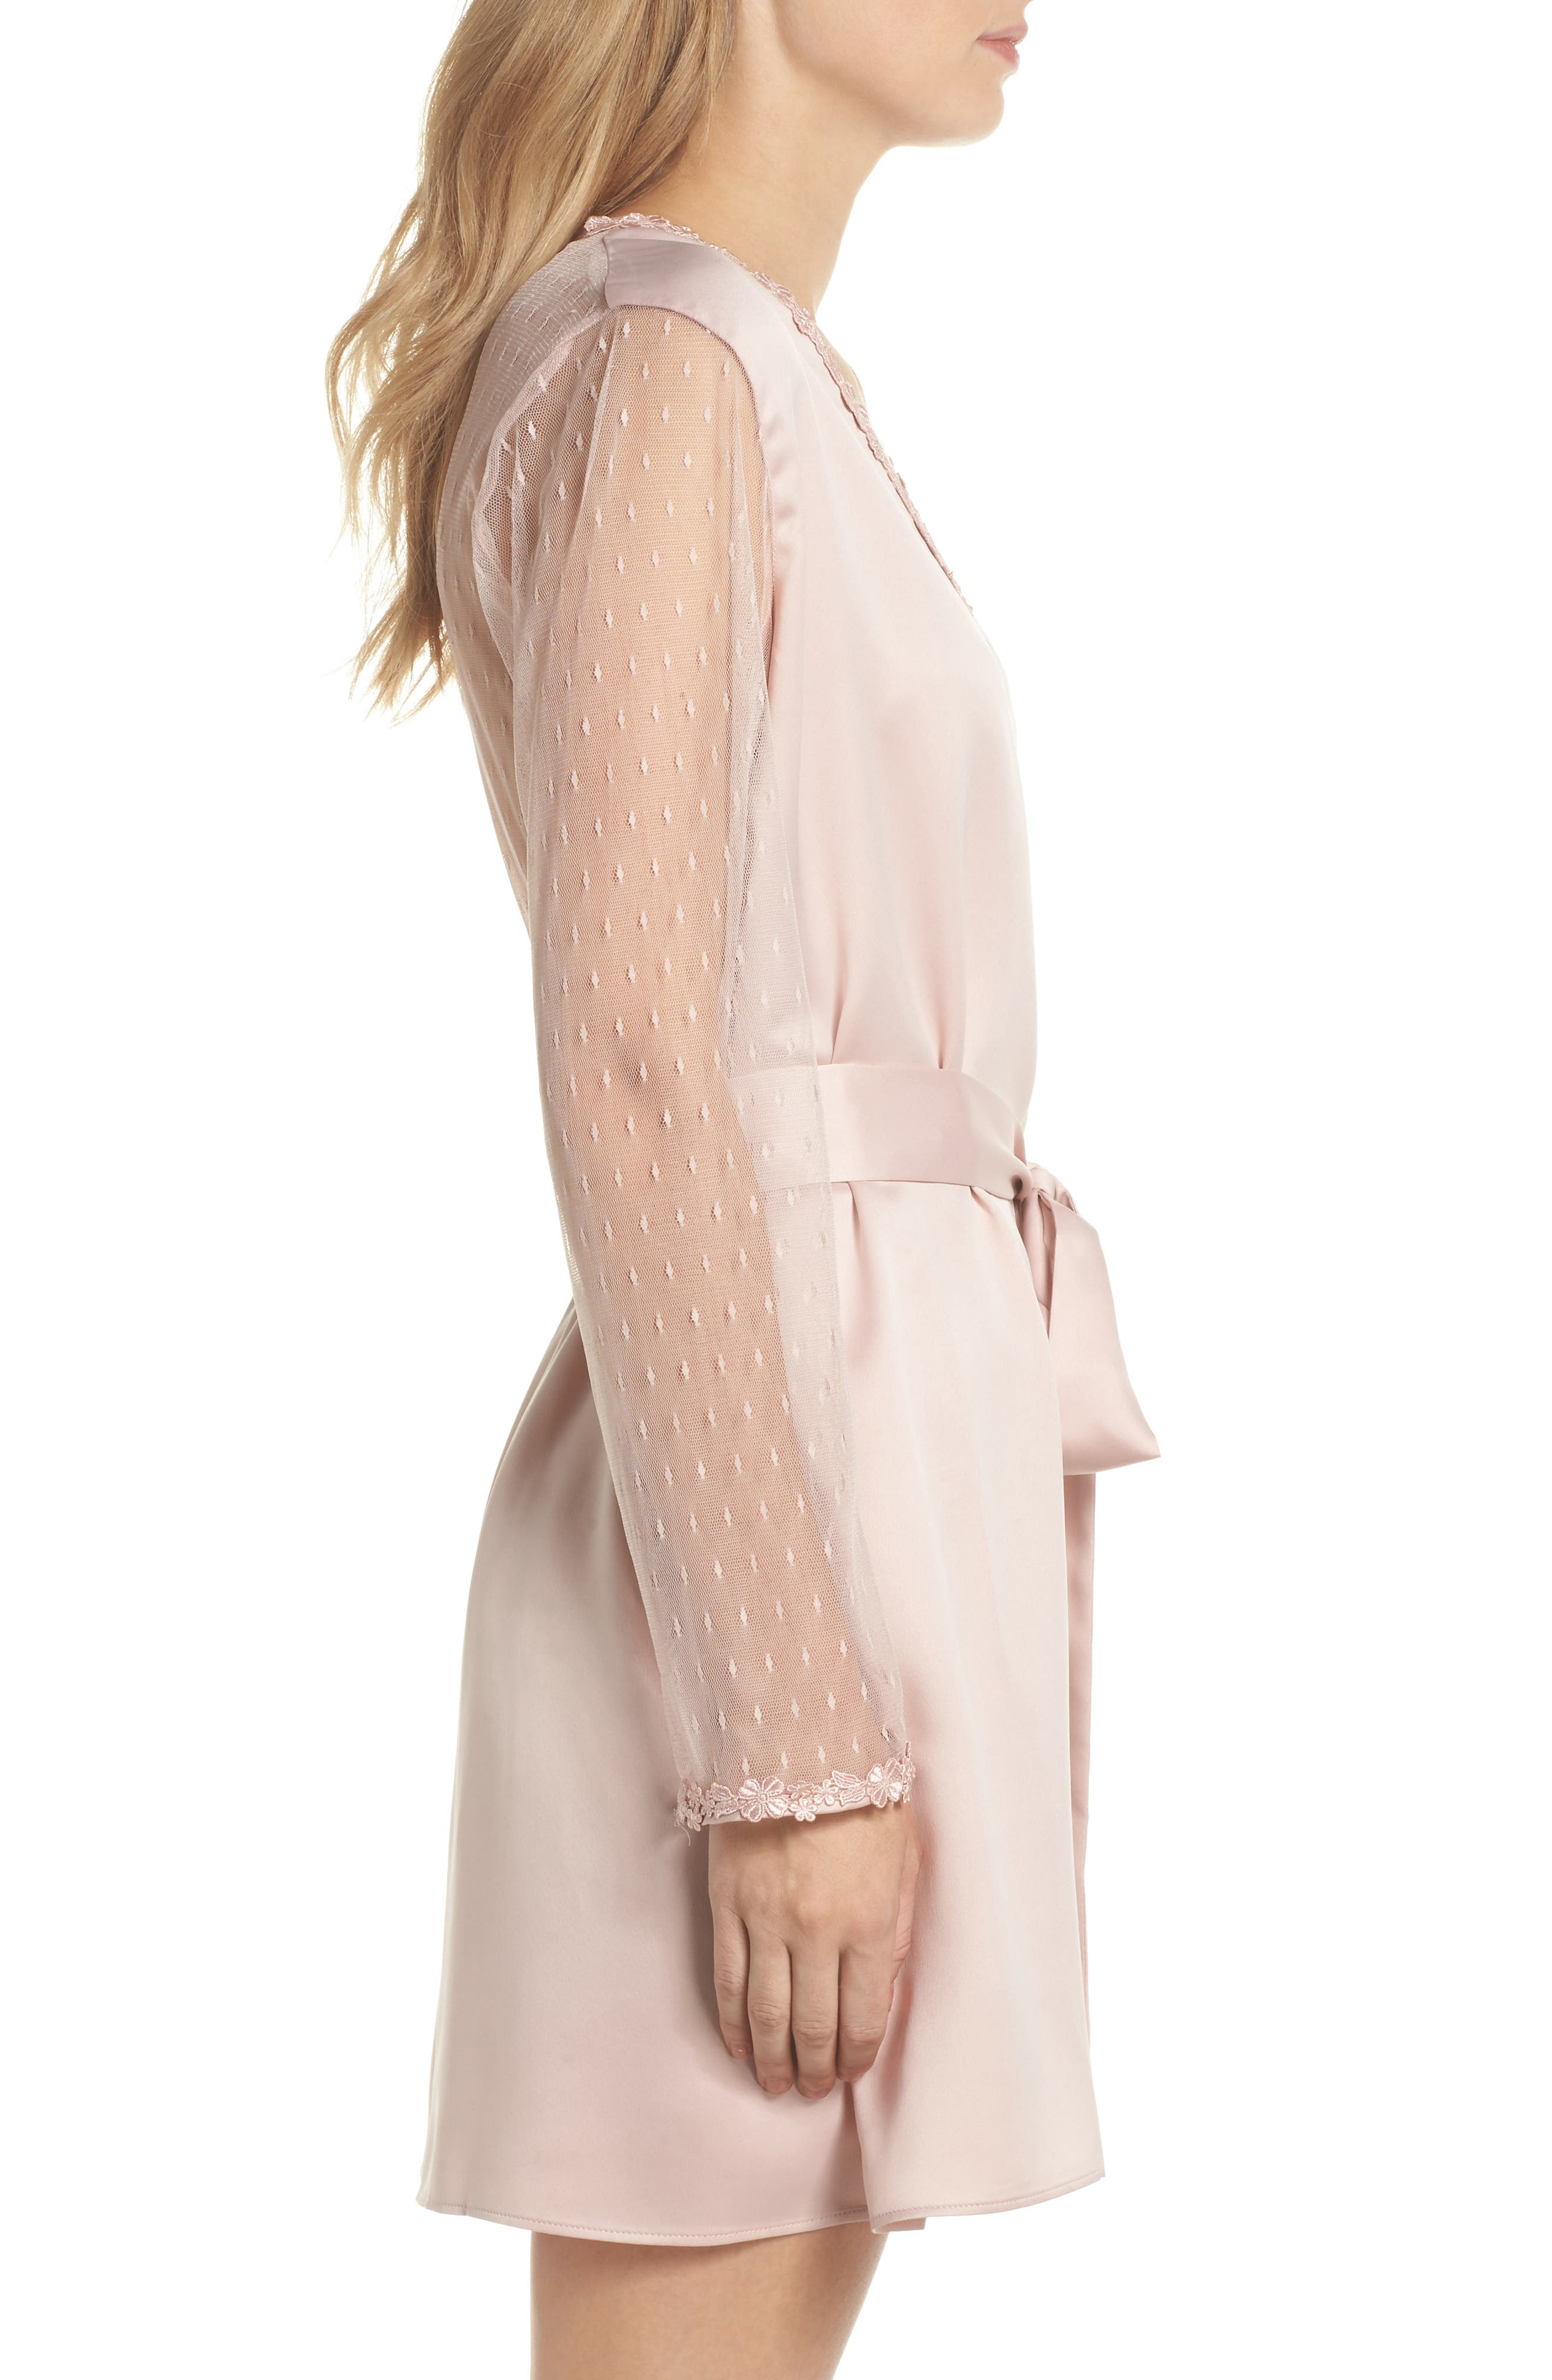 Showstopper Robe,                             Alternate thumbnail 3, color,                             Shell Pink